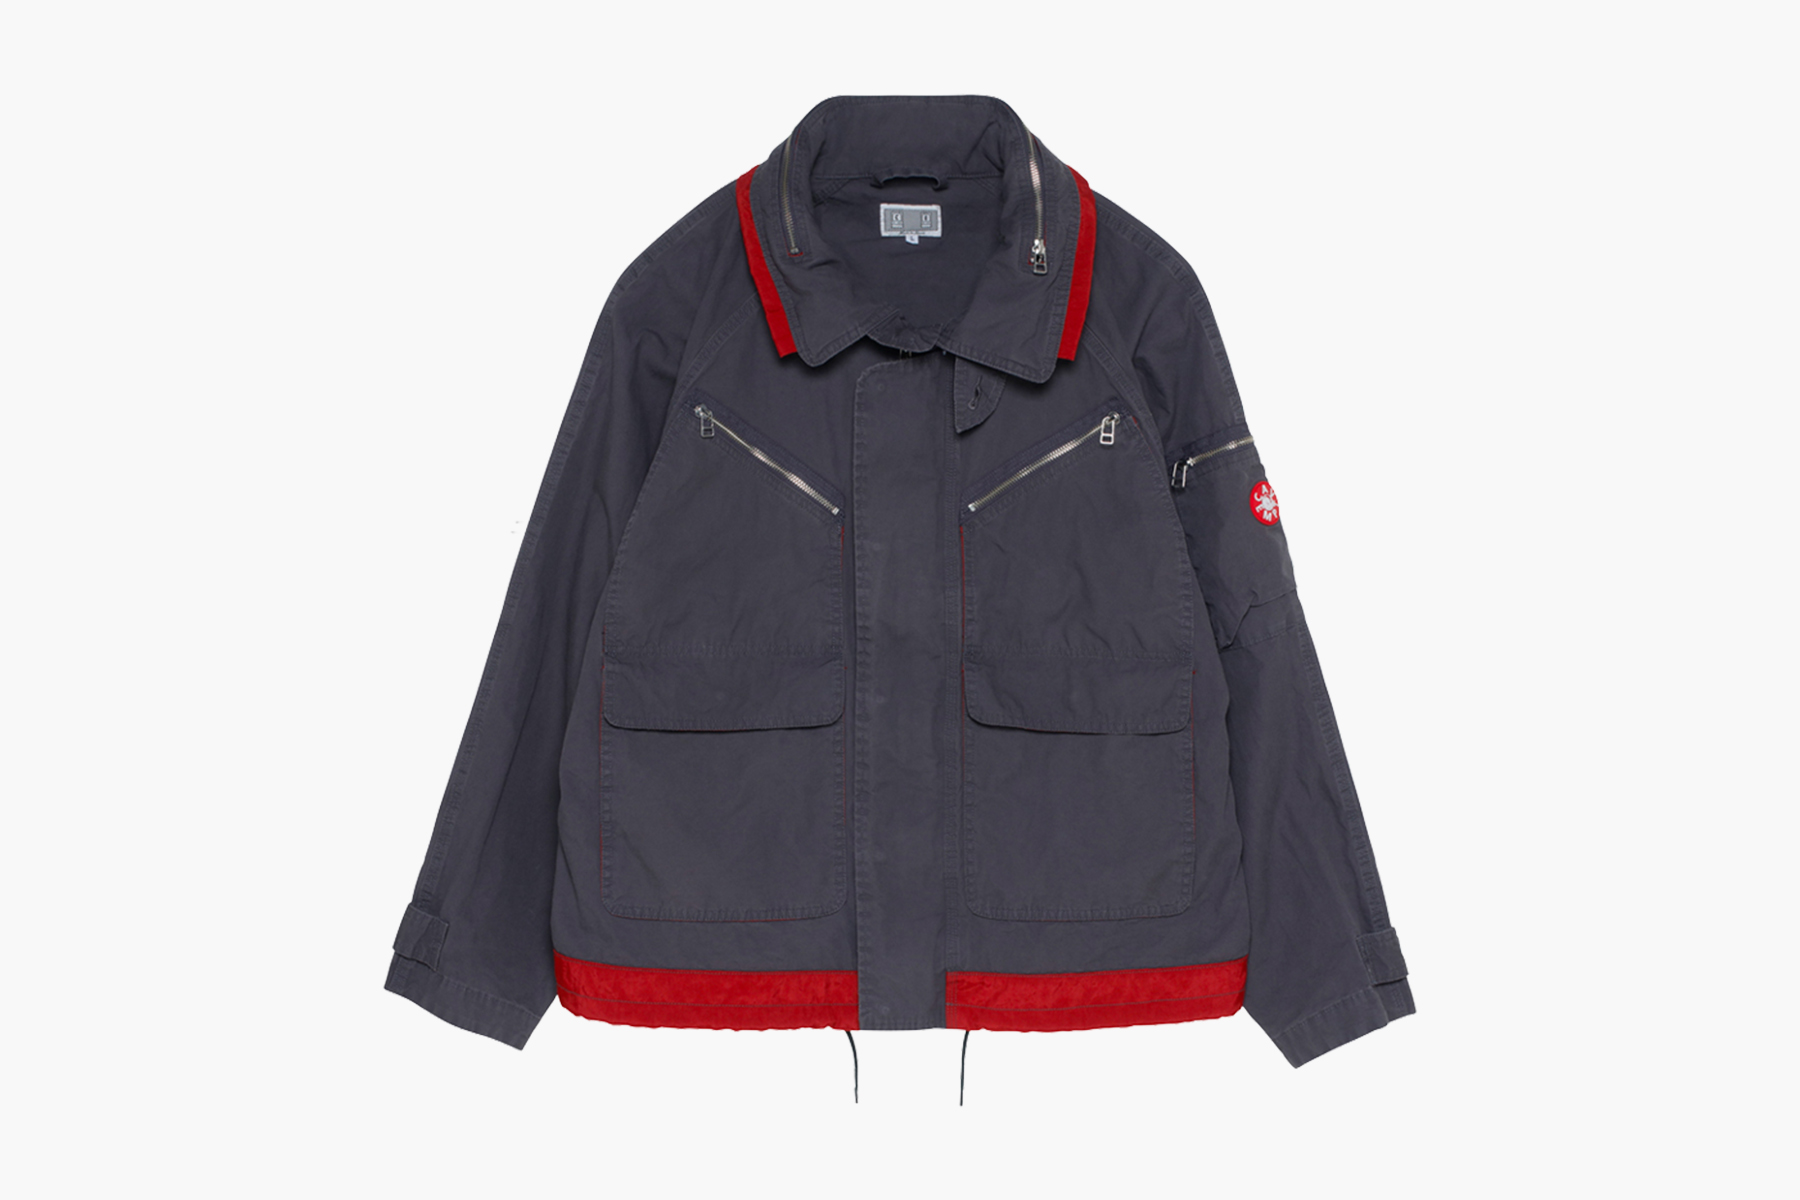 Cav Empt SS20 8th Drop